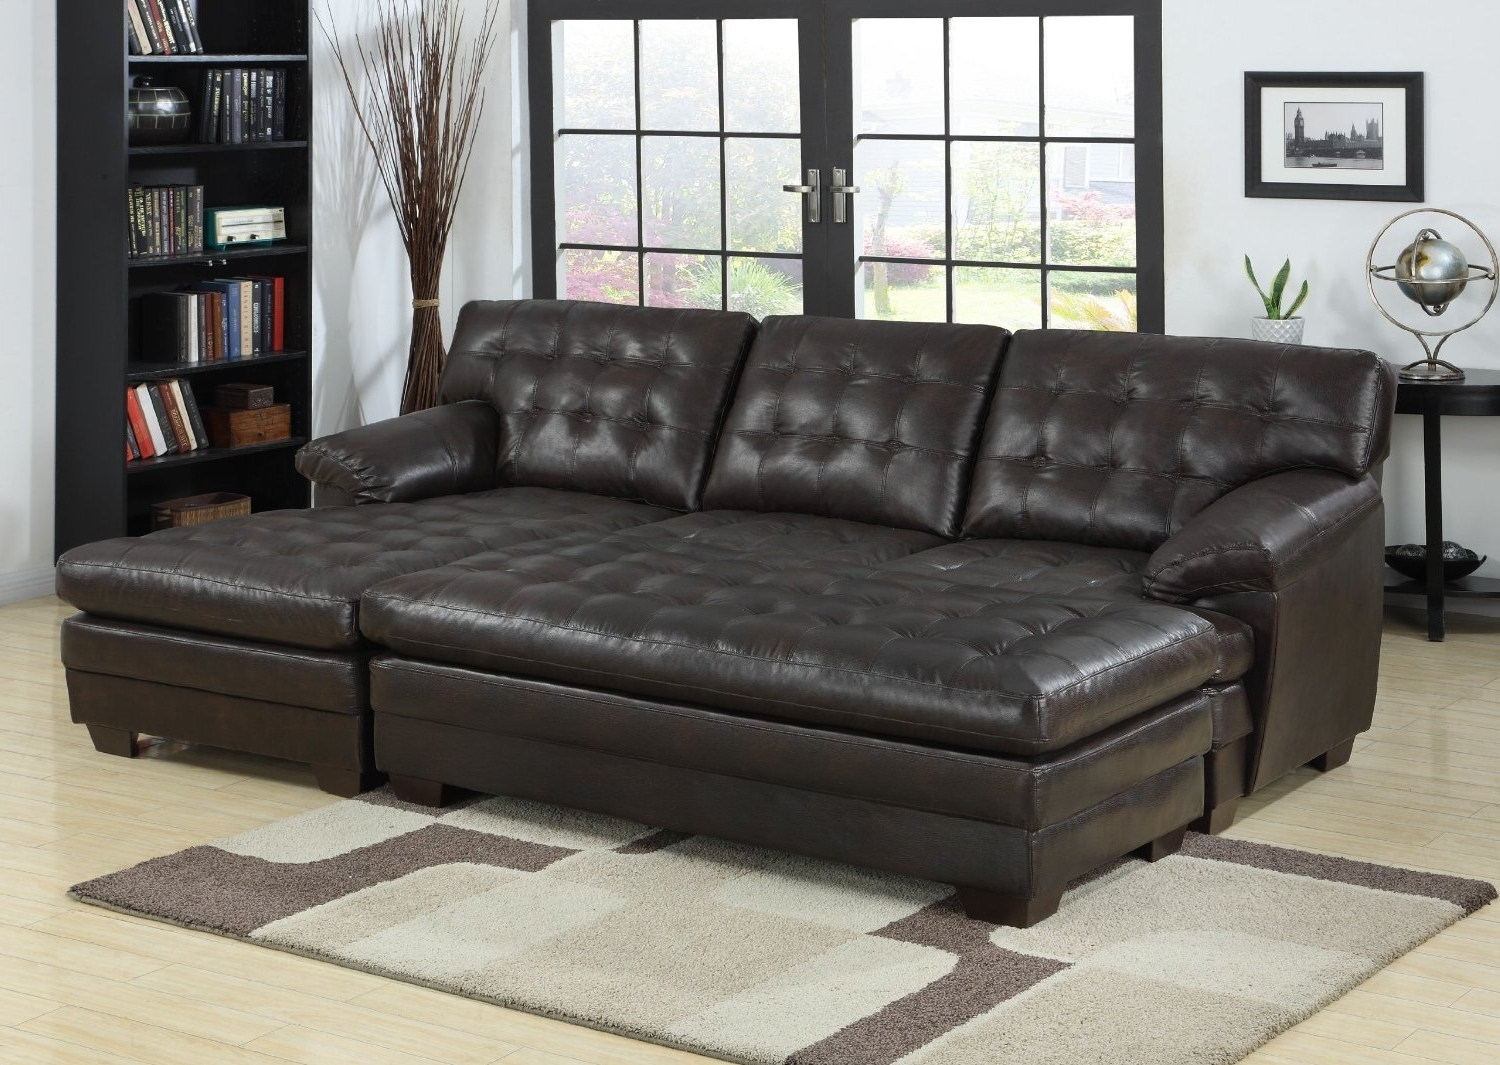 Indoor Double Chaise Lounges In Trendy Luxury Double Chaise Lounge Sofa 92 About Remodel Sofas And (Gallery 11 of 15)